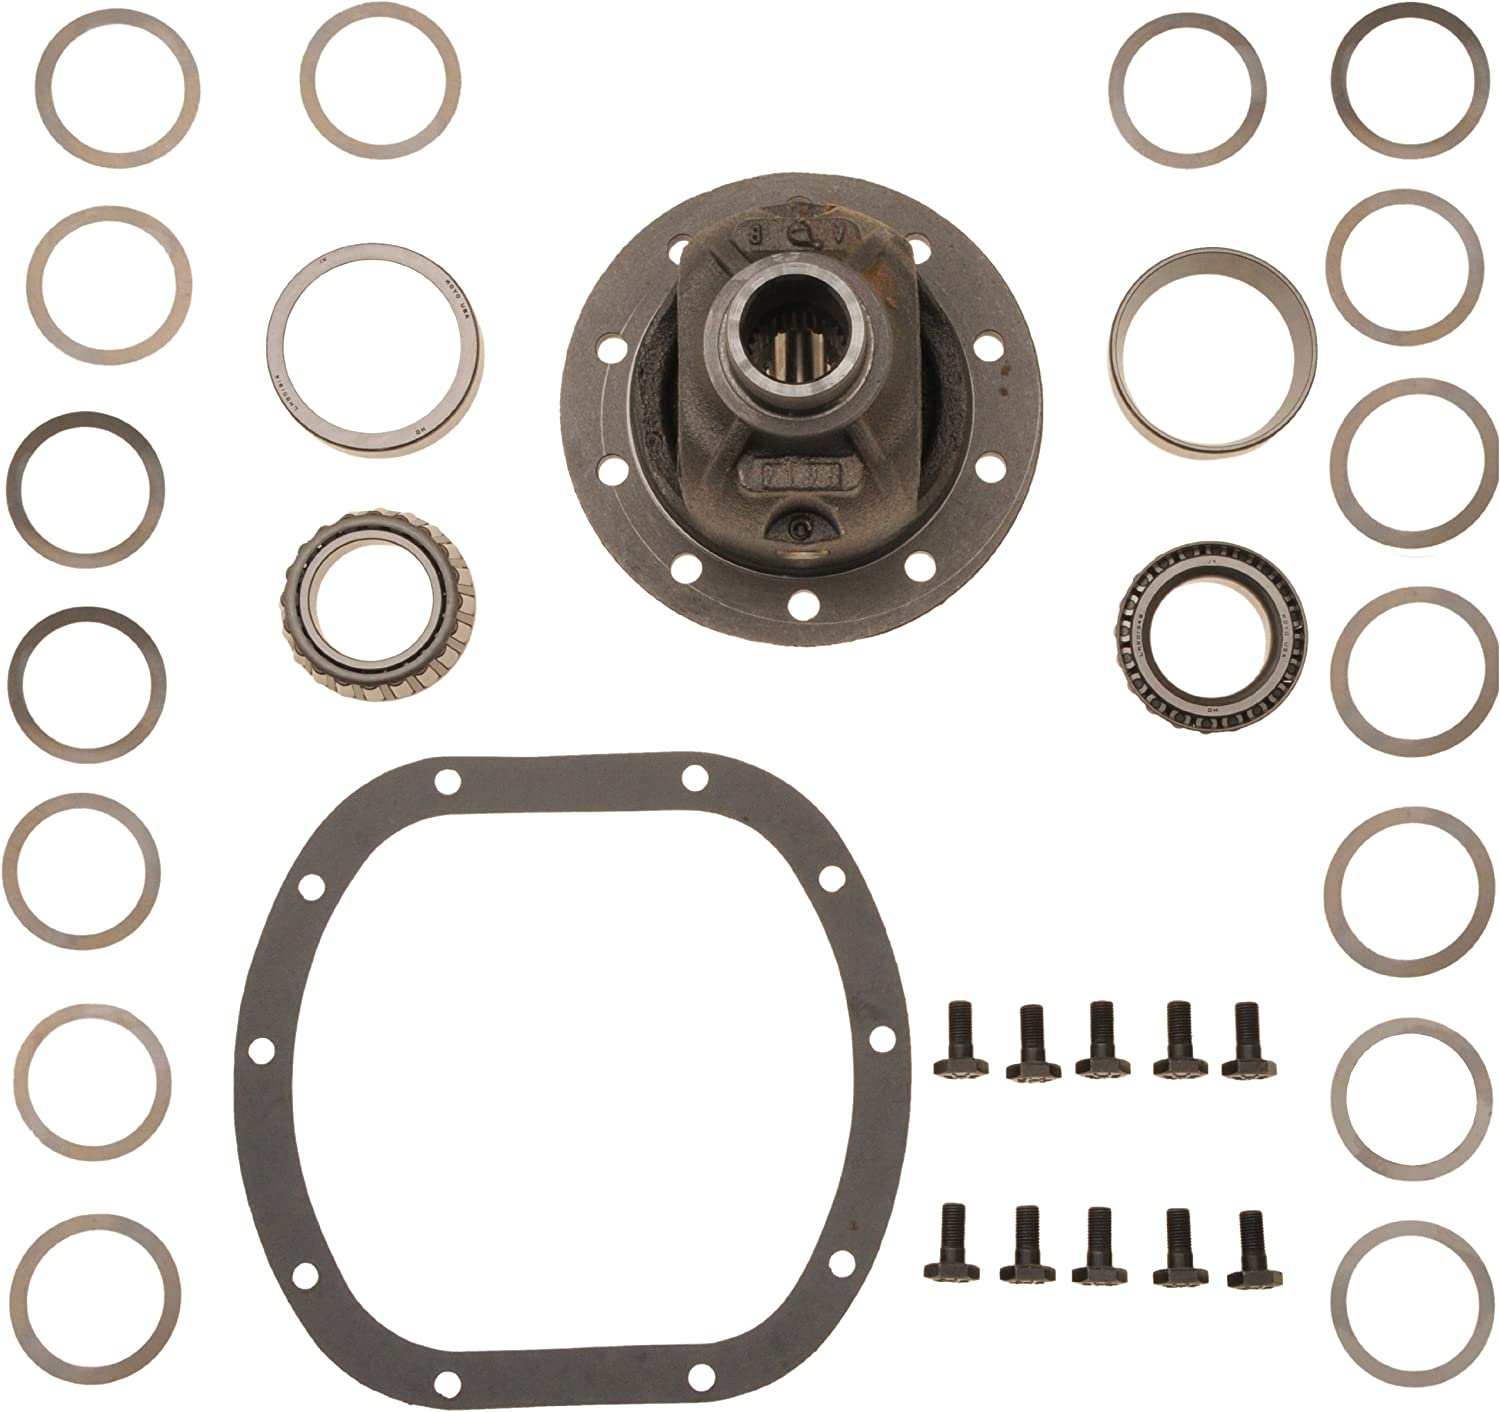 Spicer 706003X Differential Case Assembly Kit